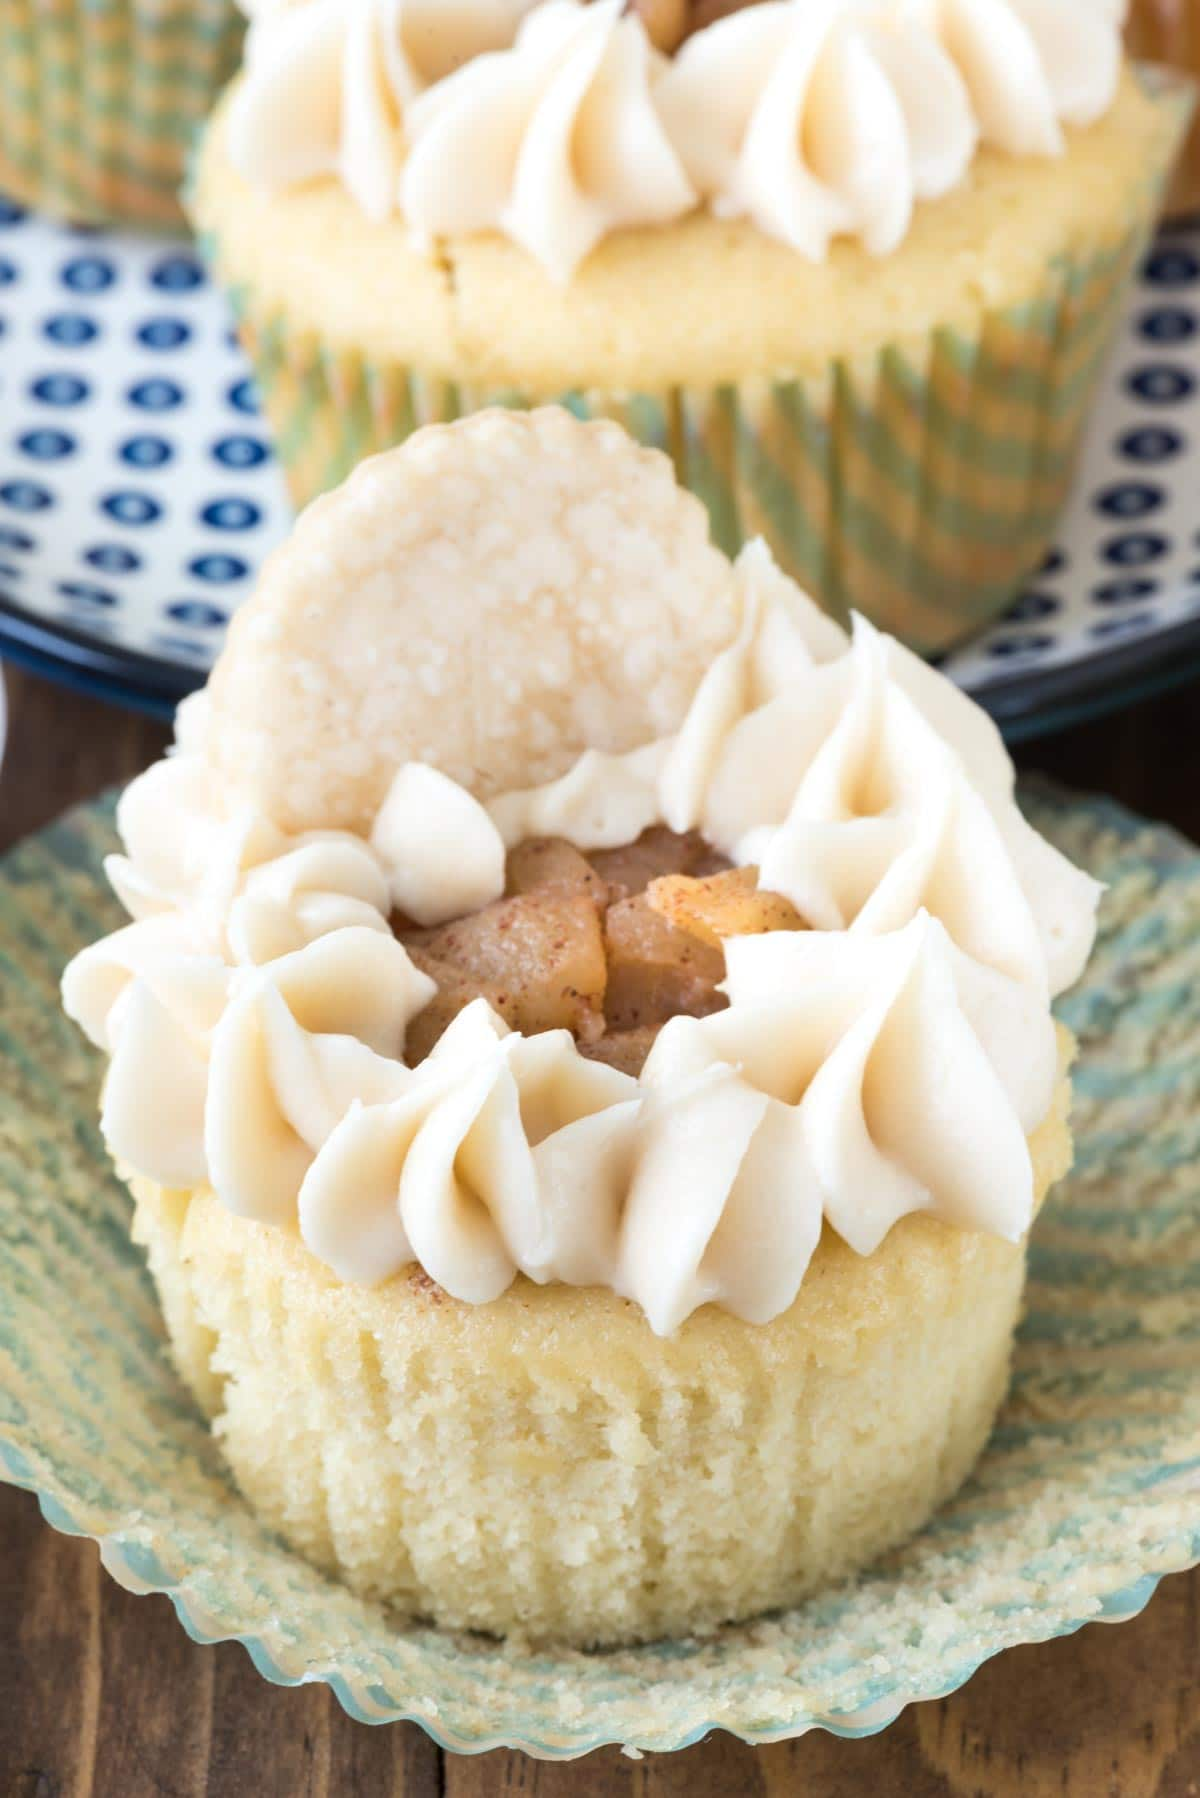 Apple Pie Cupcakes - My favorite vanilla cupcake recipe filled with homemade apple pie filling, topped off with frosting and a pie crust chip!